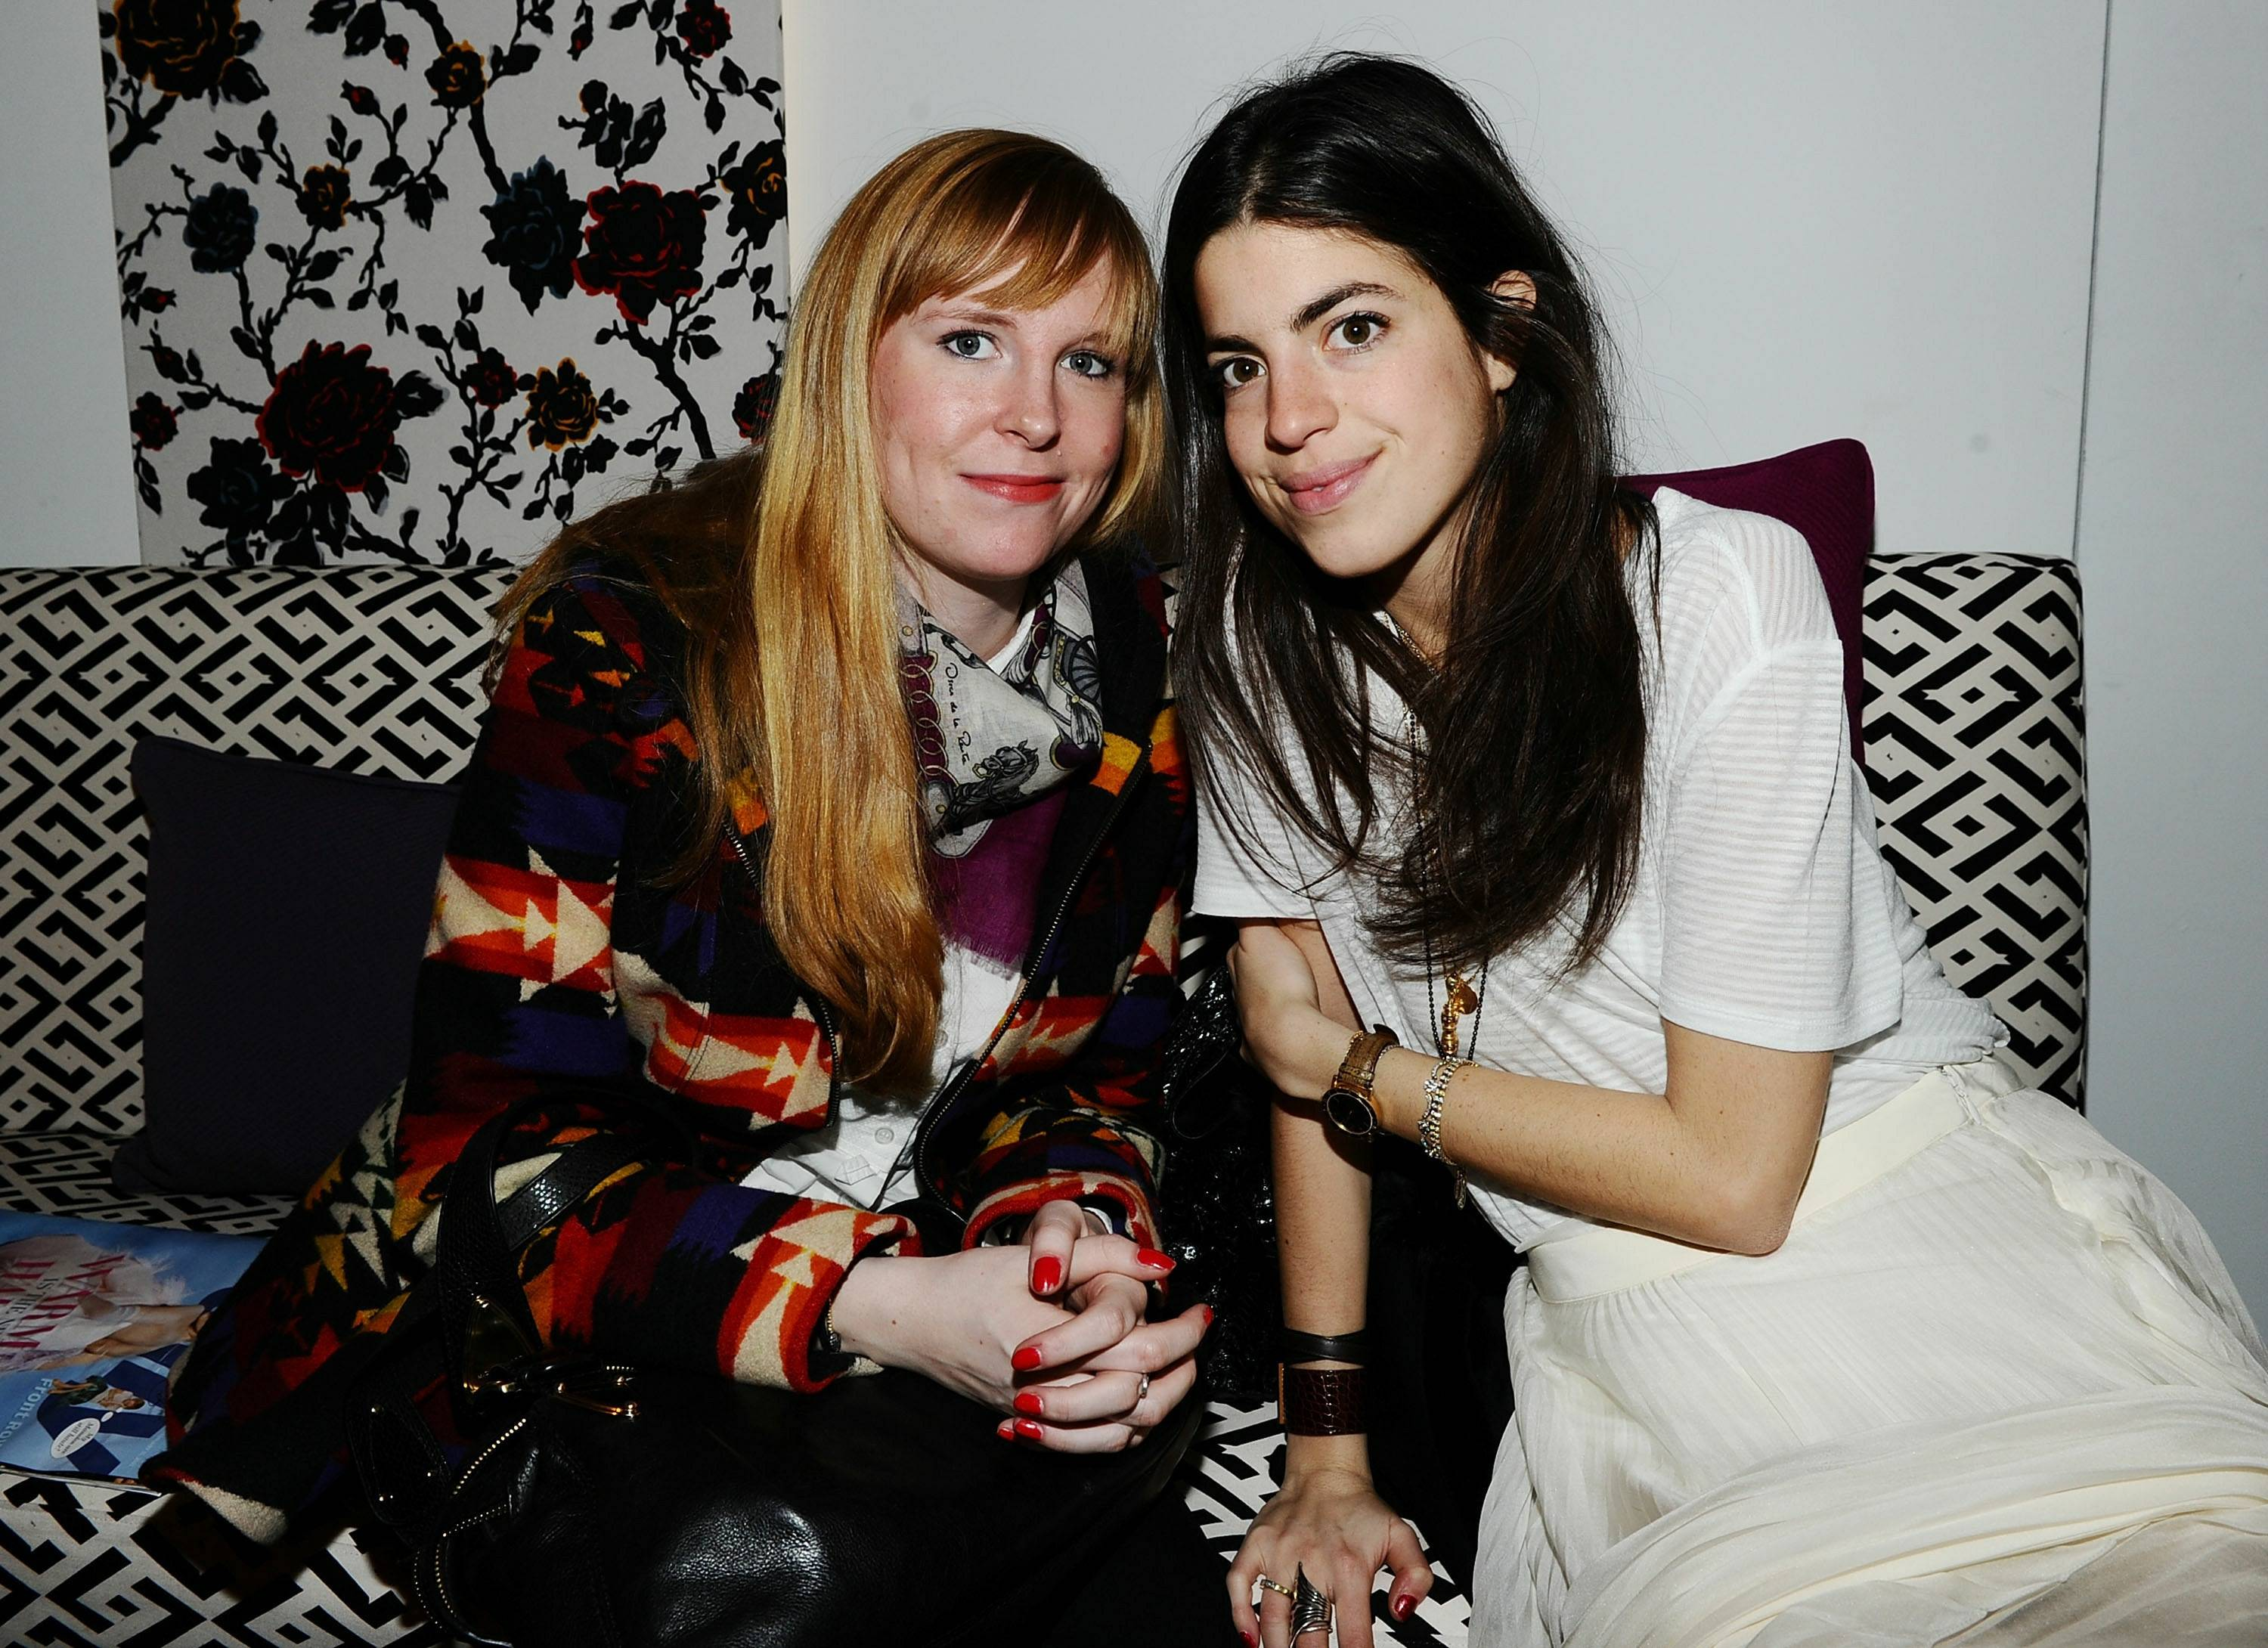 Emily Krop and Leandra Medine